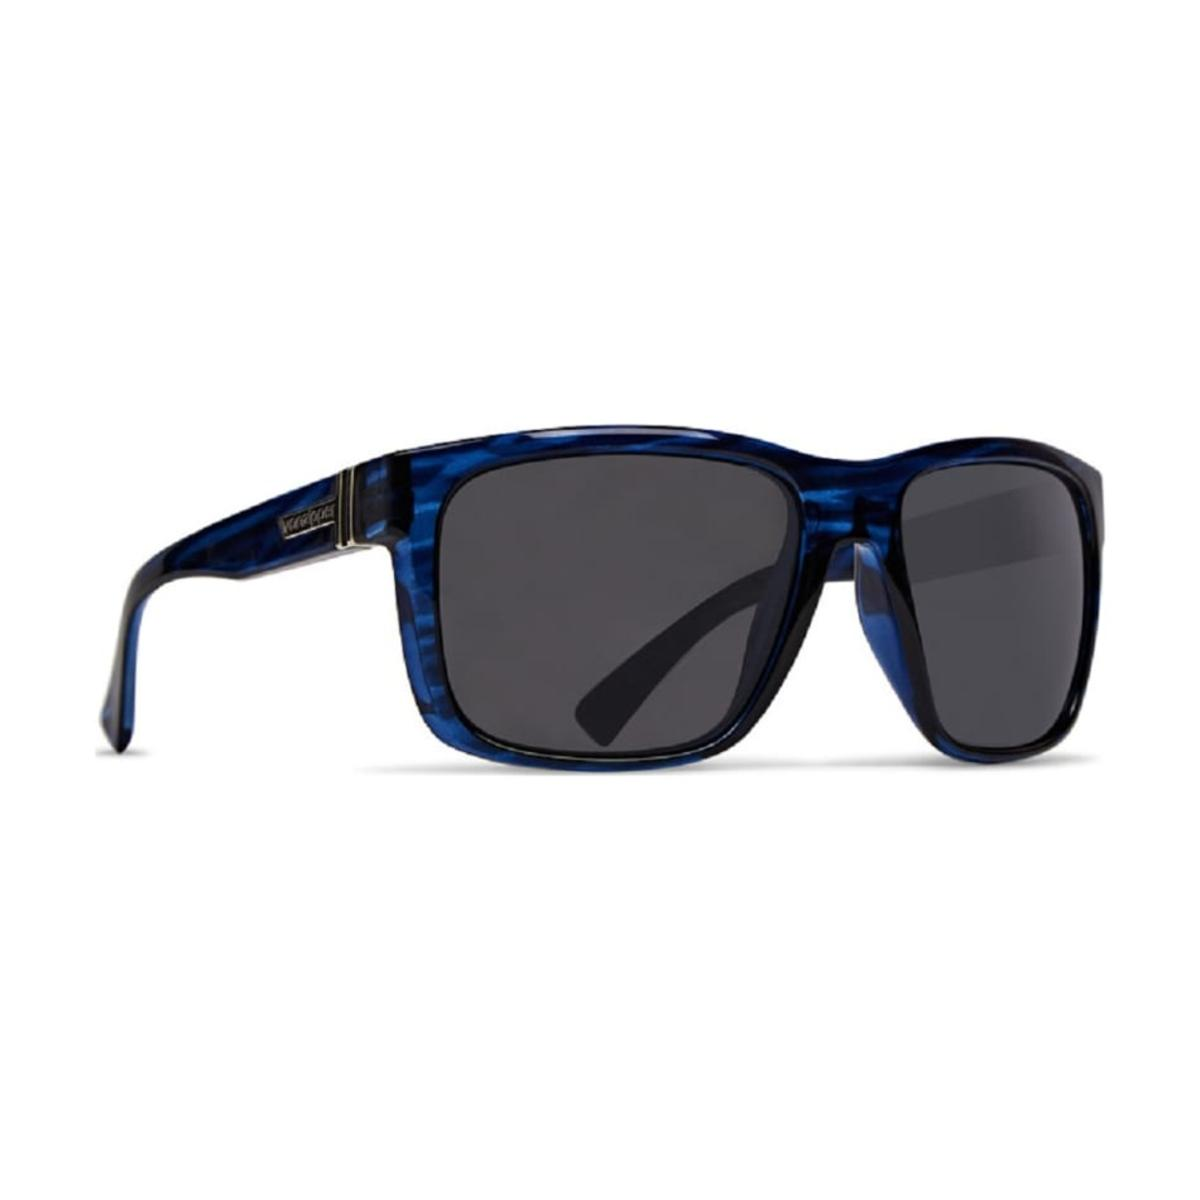 Vonzipper Maxis Sunglasses